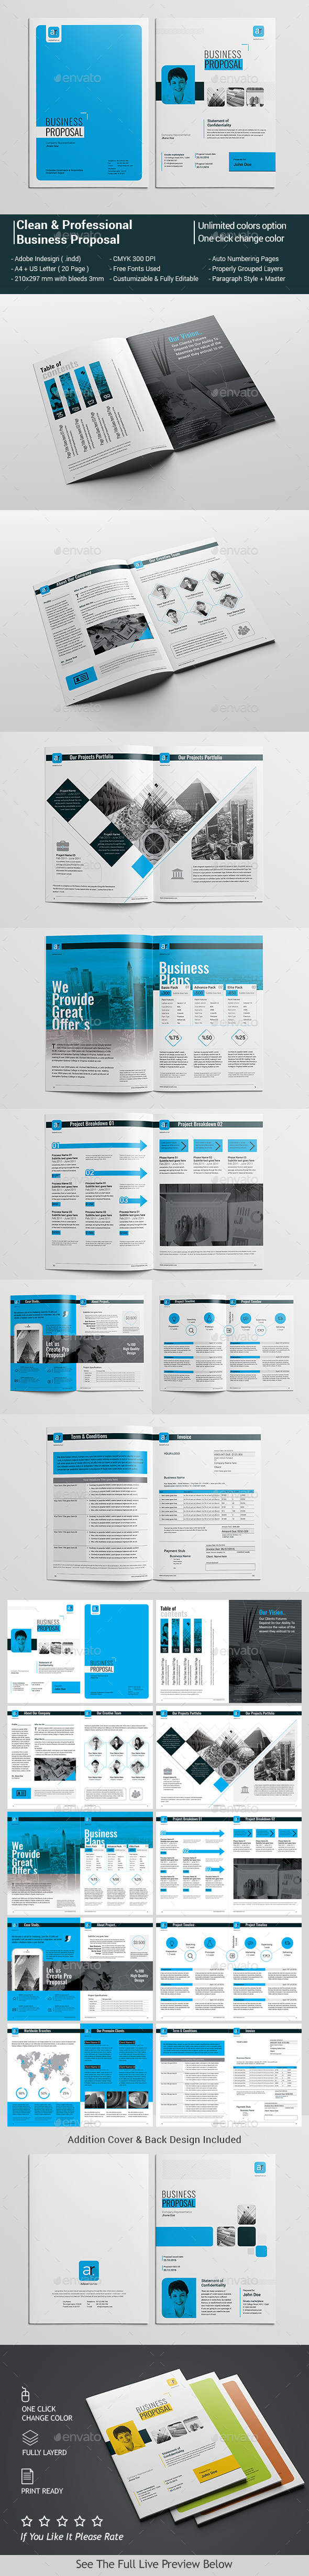 Clean & Professional Business Proposal Template InDesign INDD ...